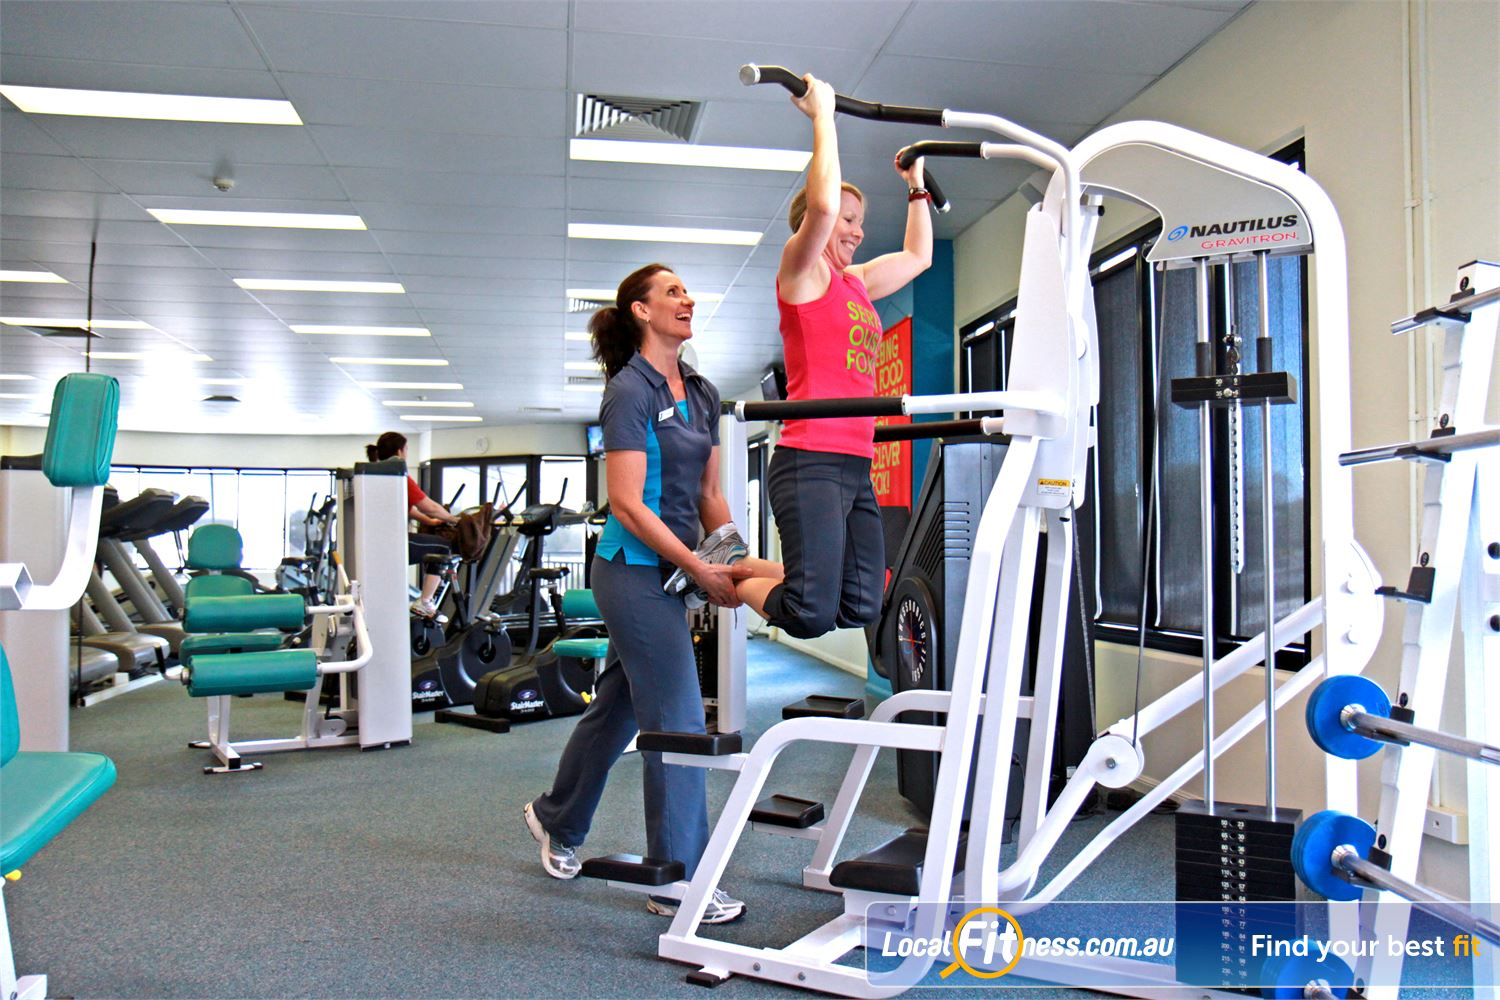 Fernwood Fitness Petrie We have the right Petrie gym equipment for women's weight loss goals.